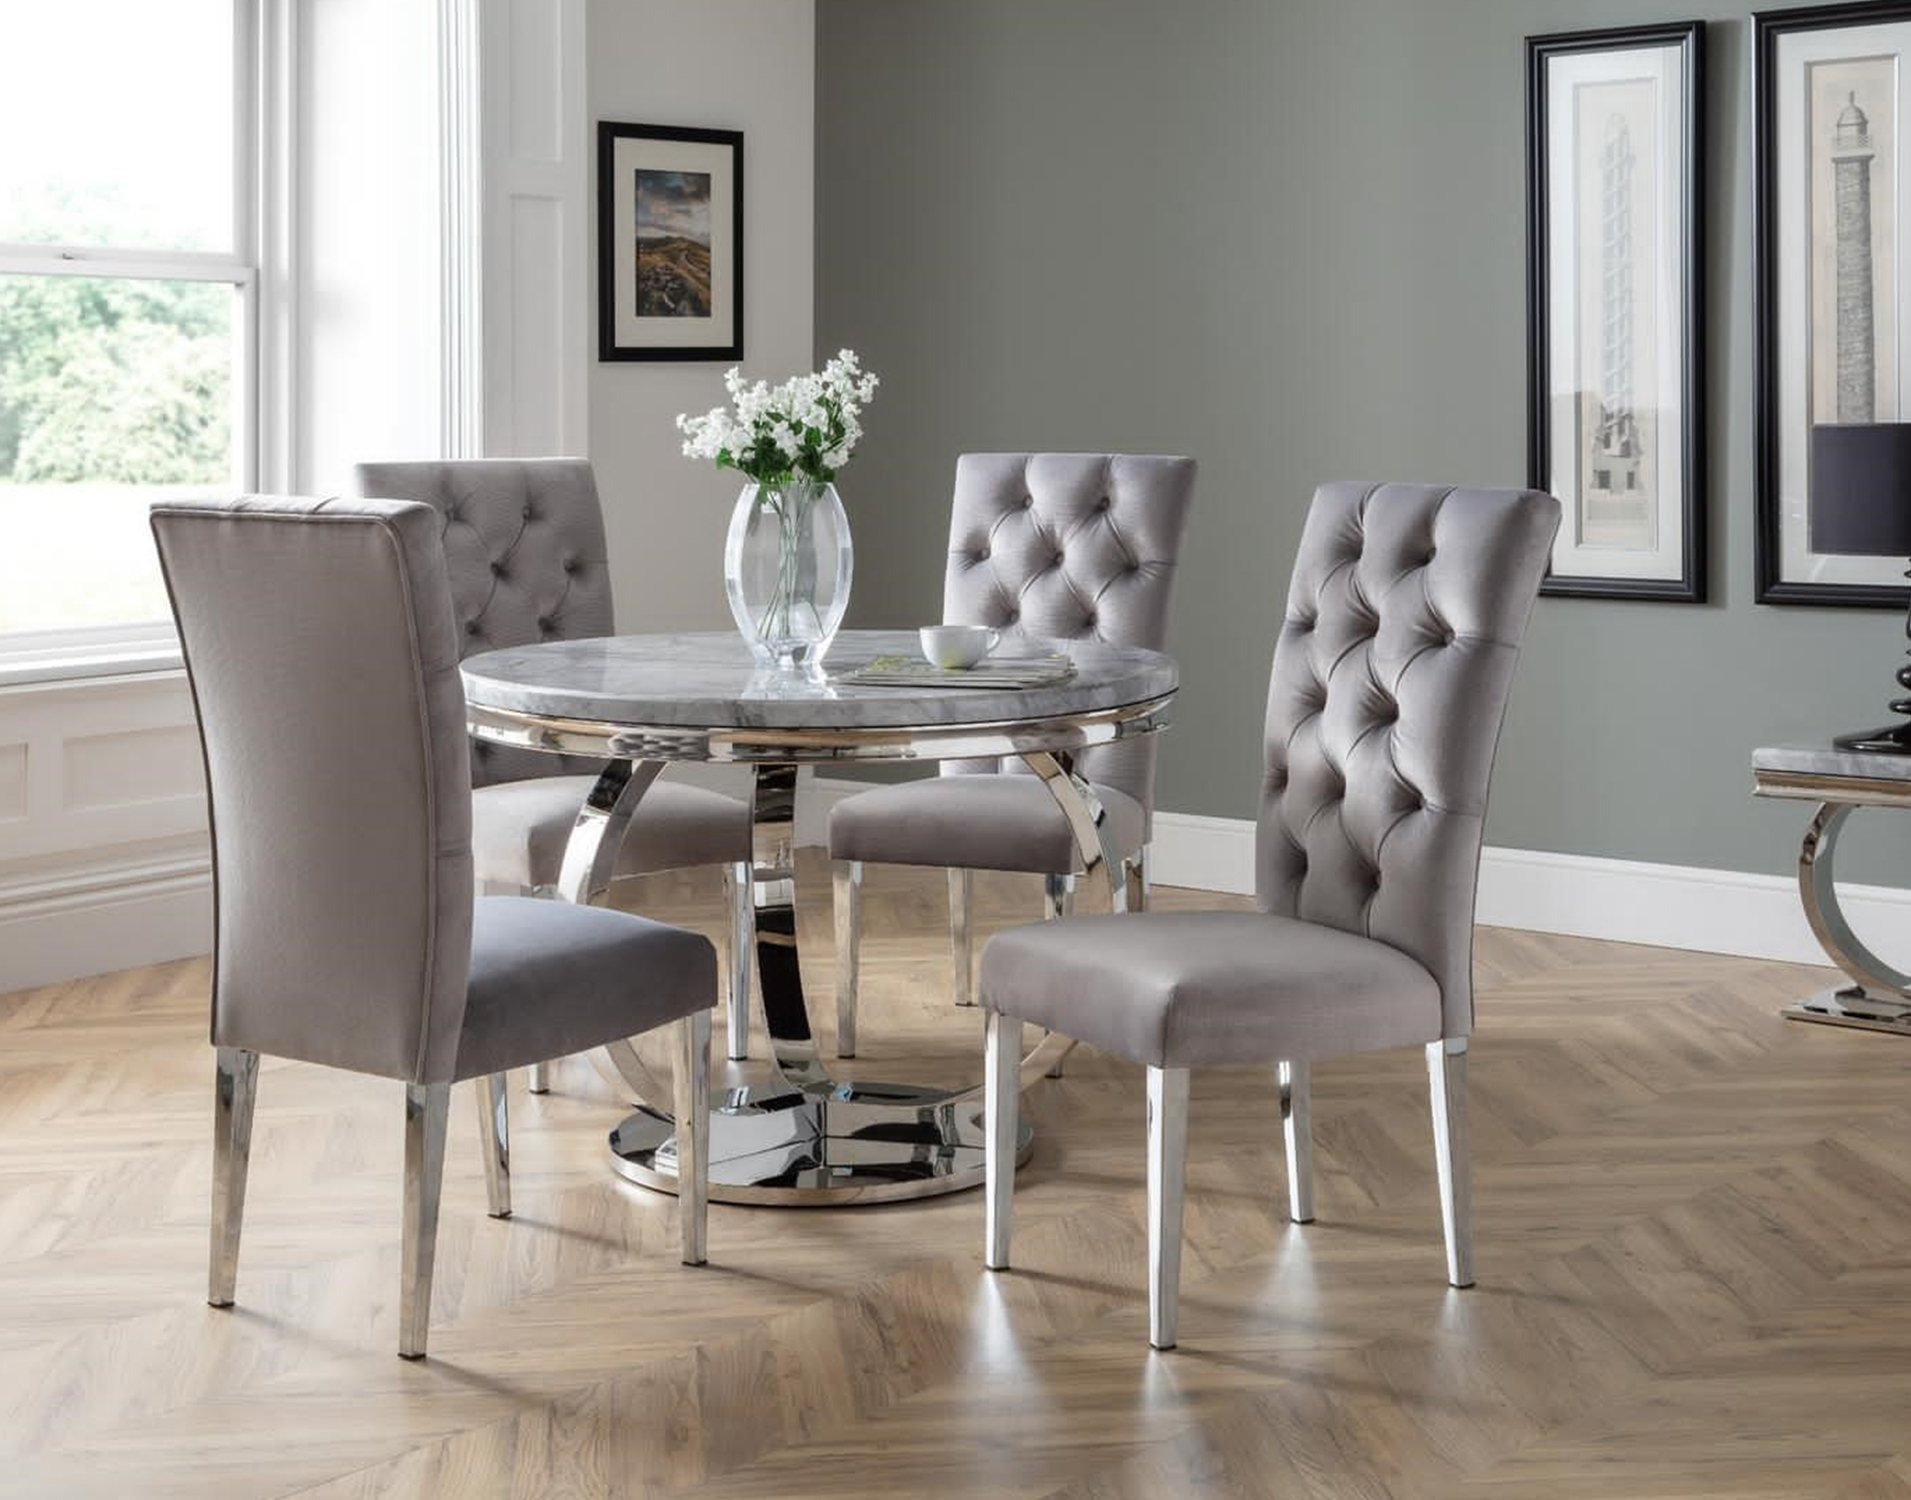 Arundel Marble Round Dining Table Set, Round Marble Table Dining Set